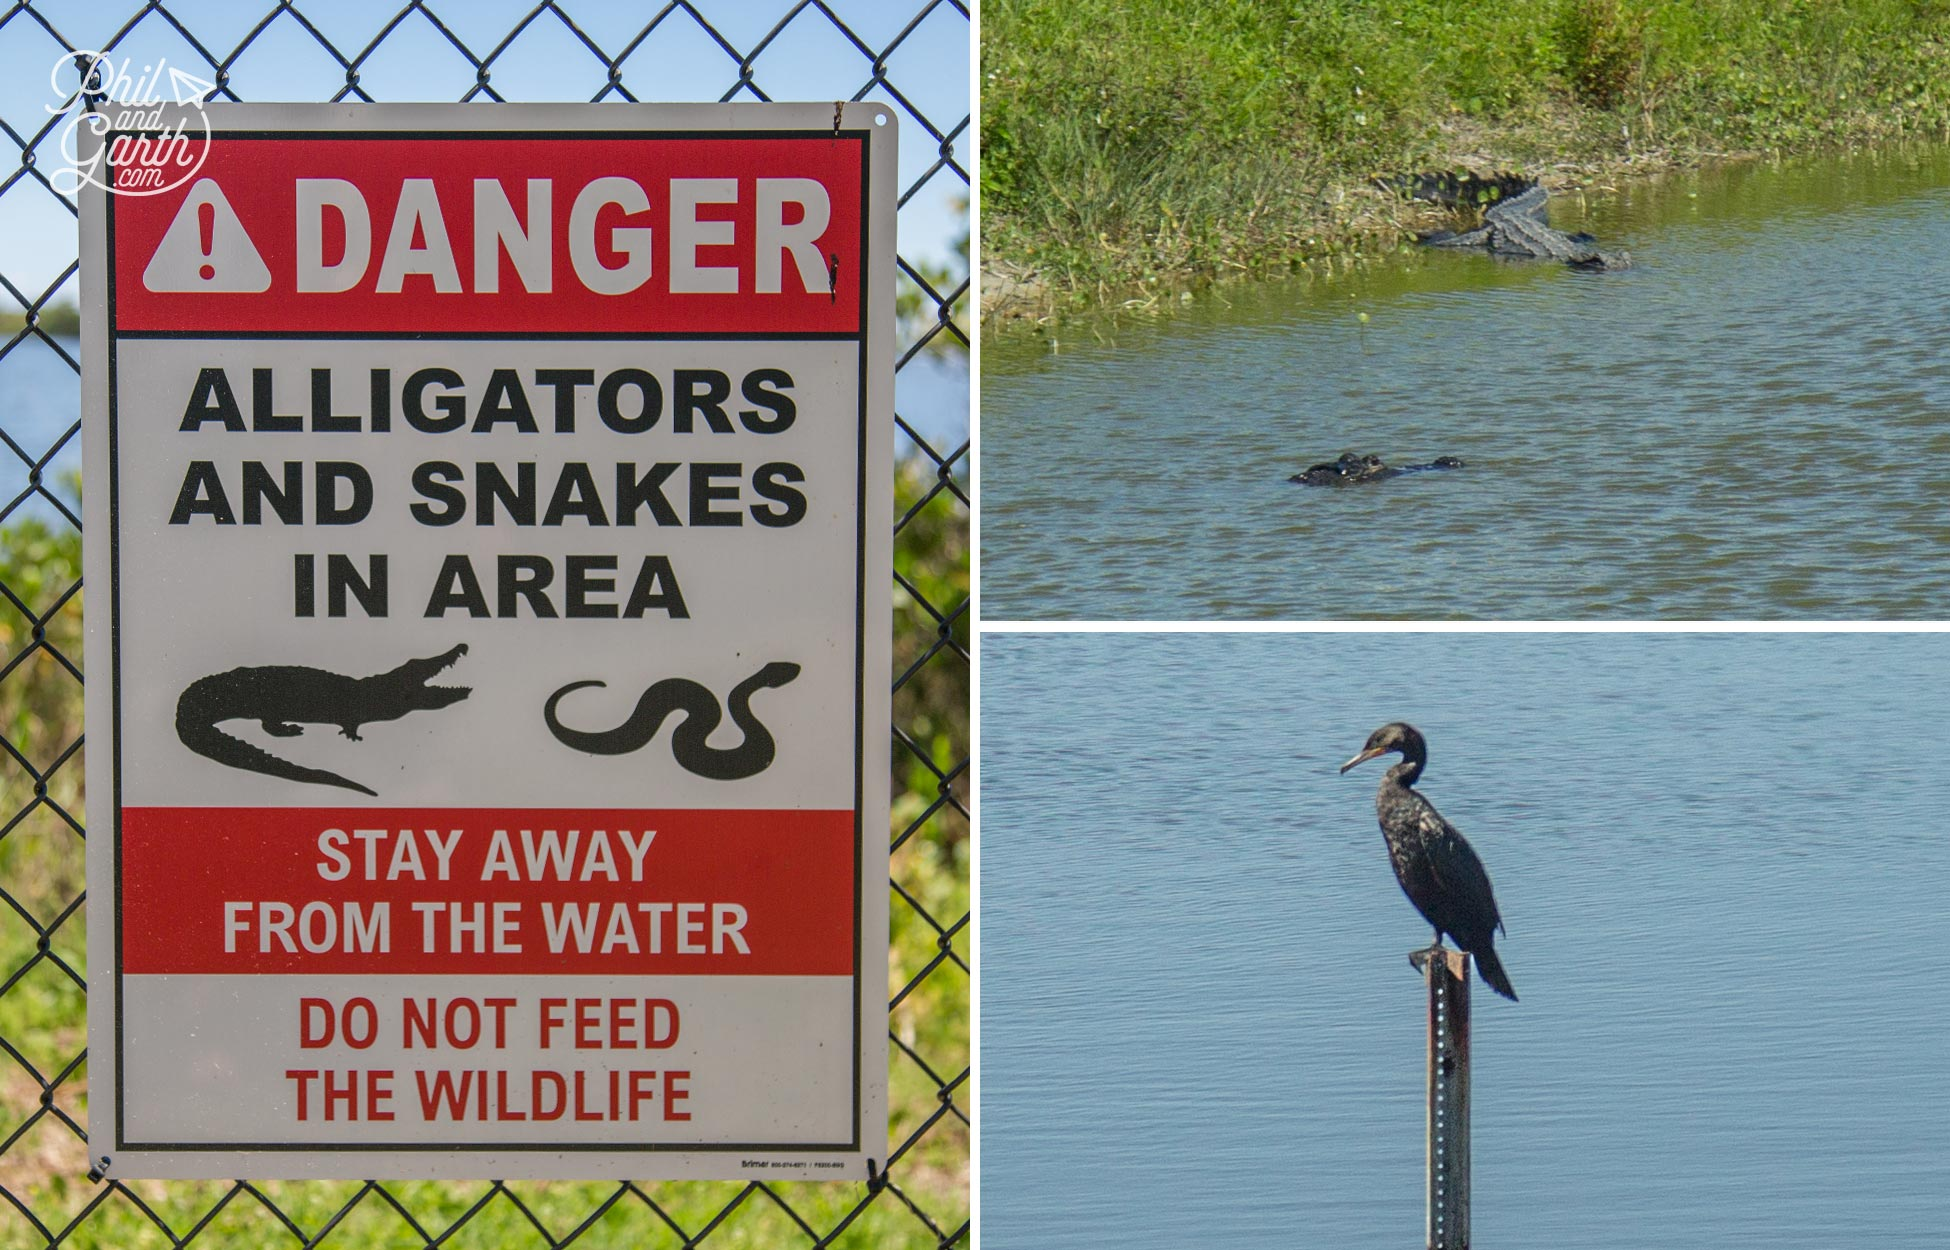 Alligators and wildlife at The Kennedy Space Center